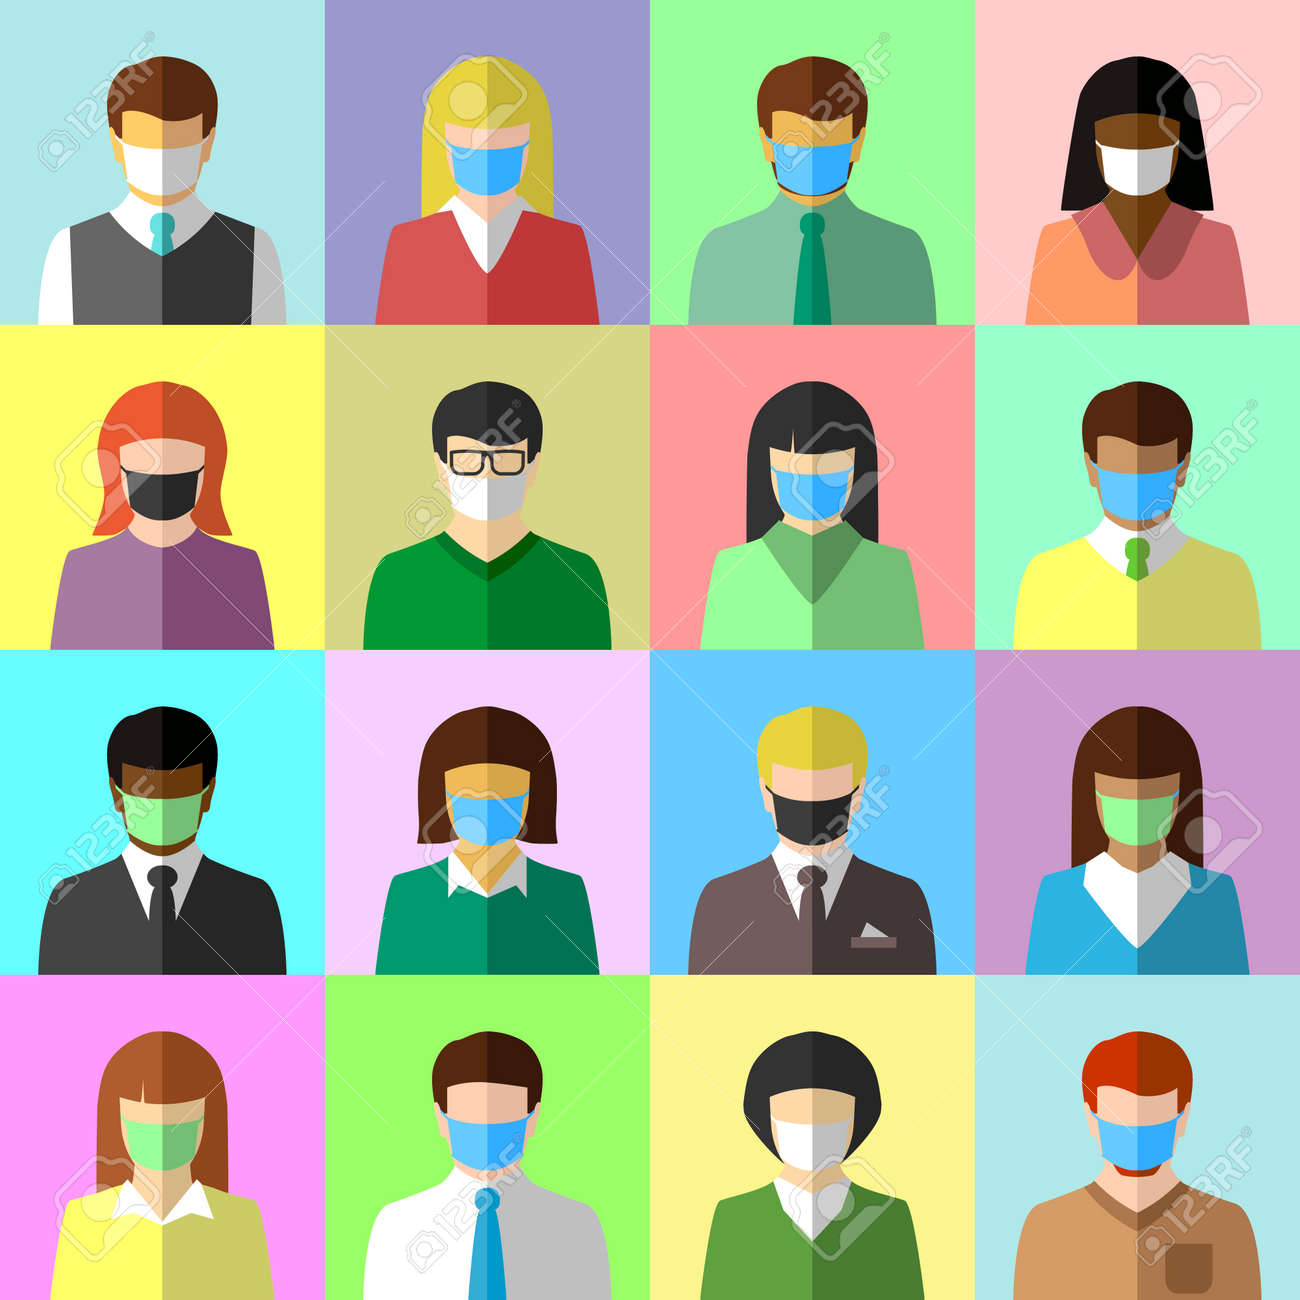 Collage of ethnically diverse people wearing face masks. Diversity, COVID-19, pandemic and face mask concept. Flat design, icon set. - 169043365